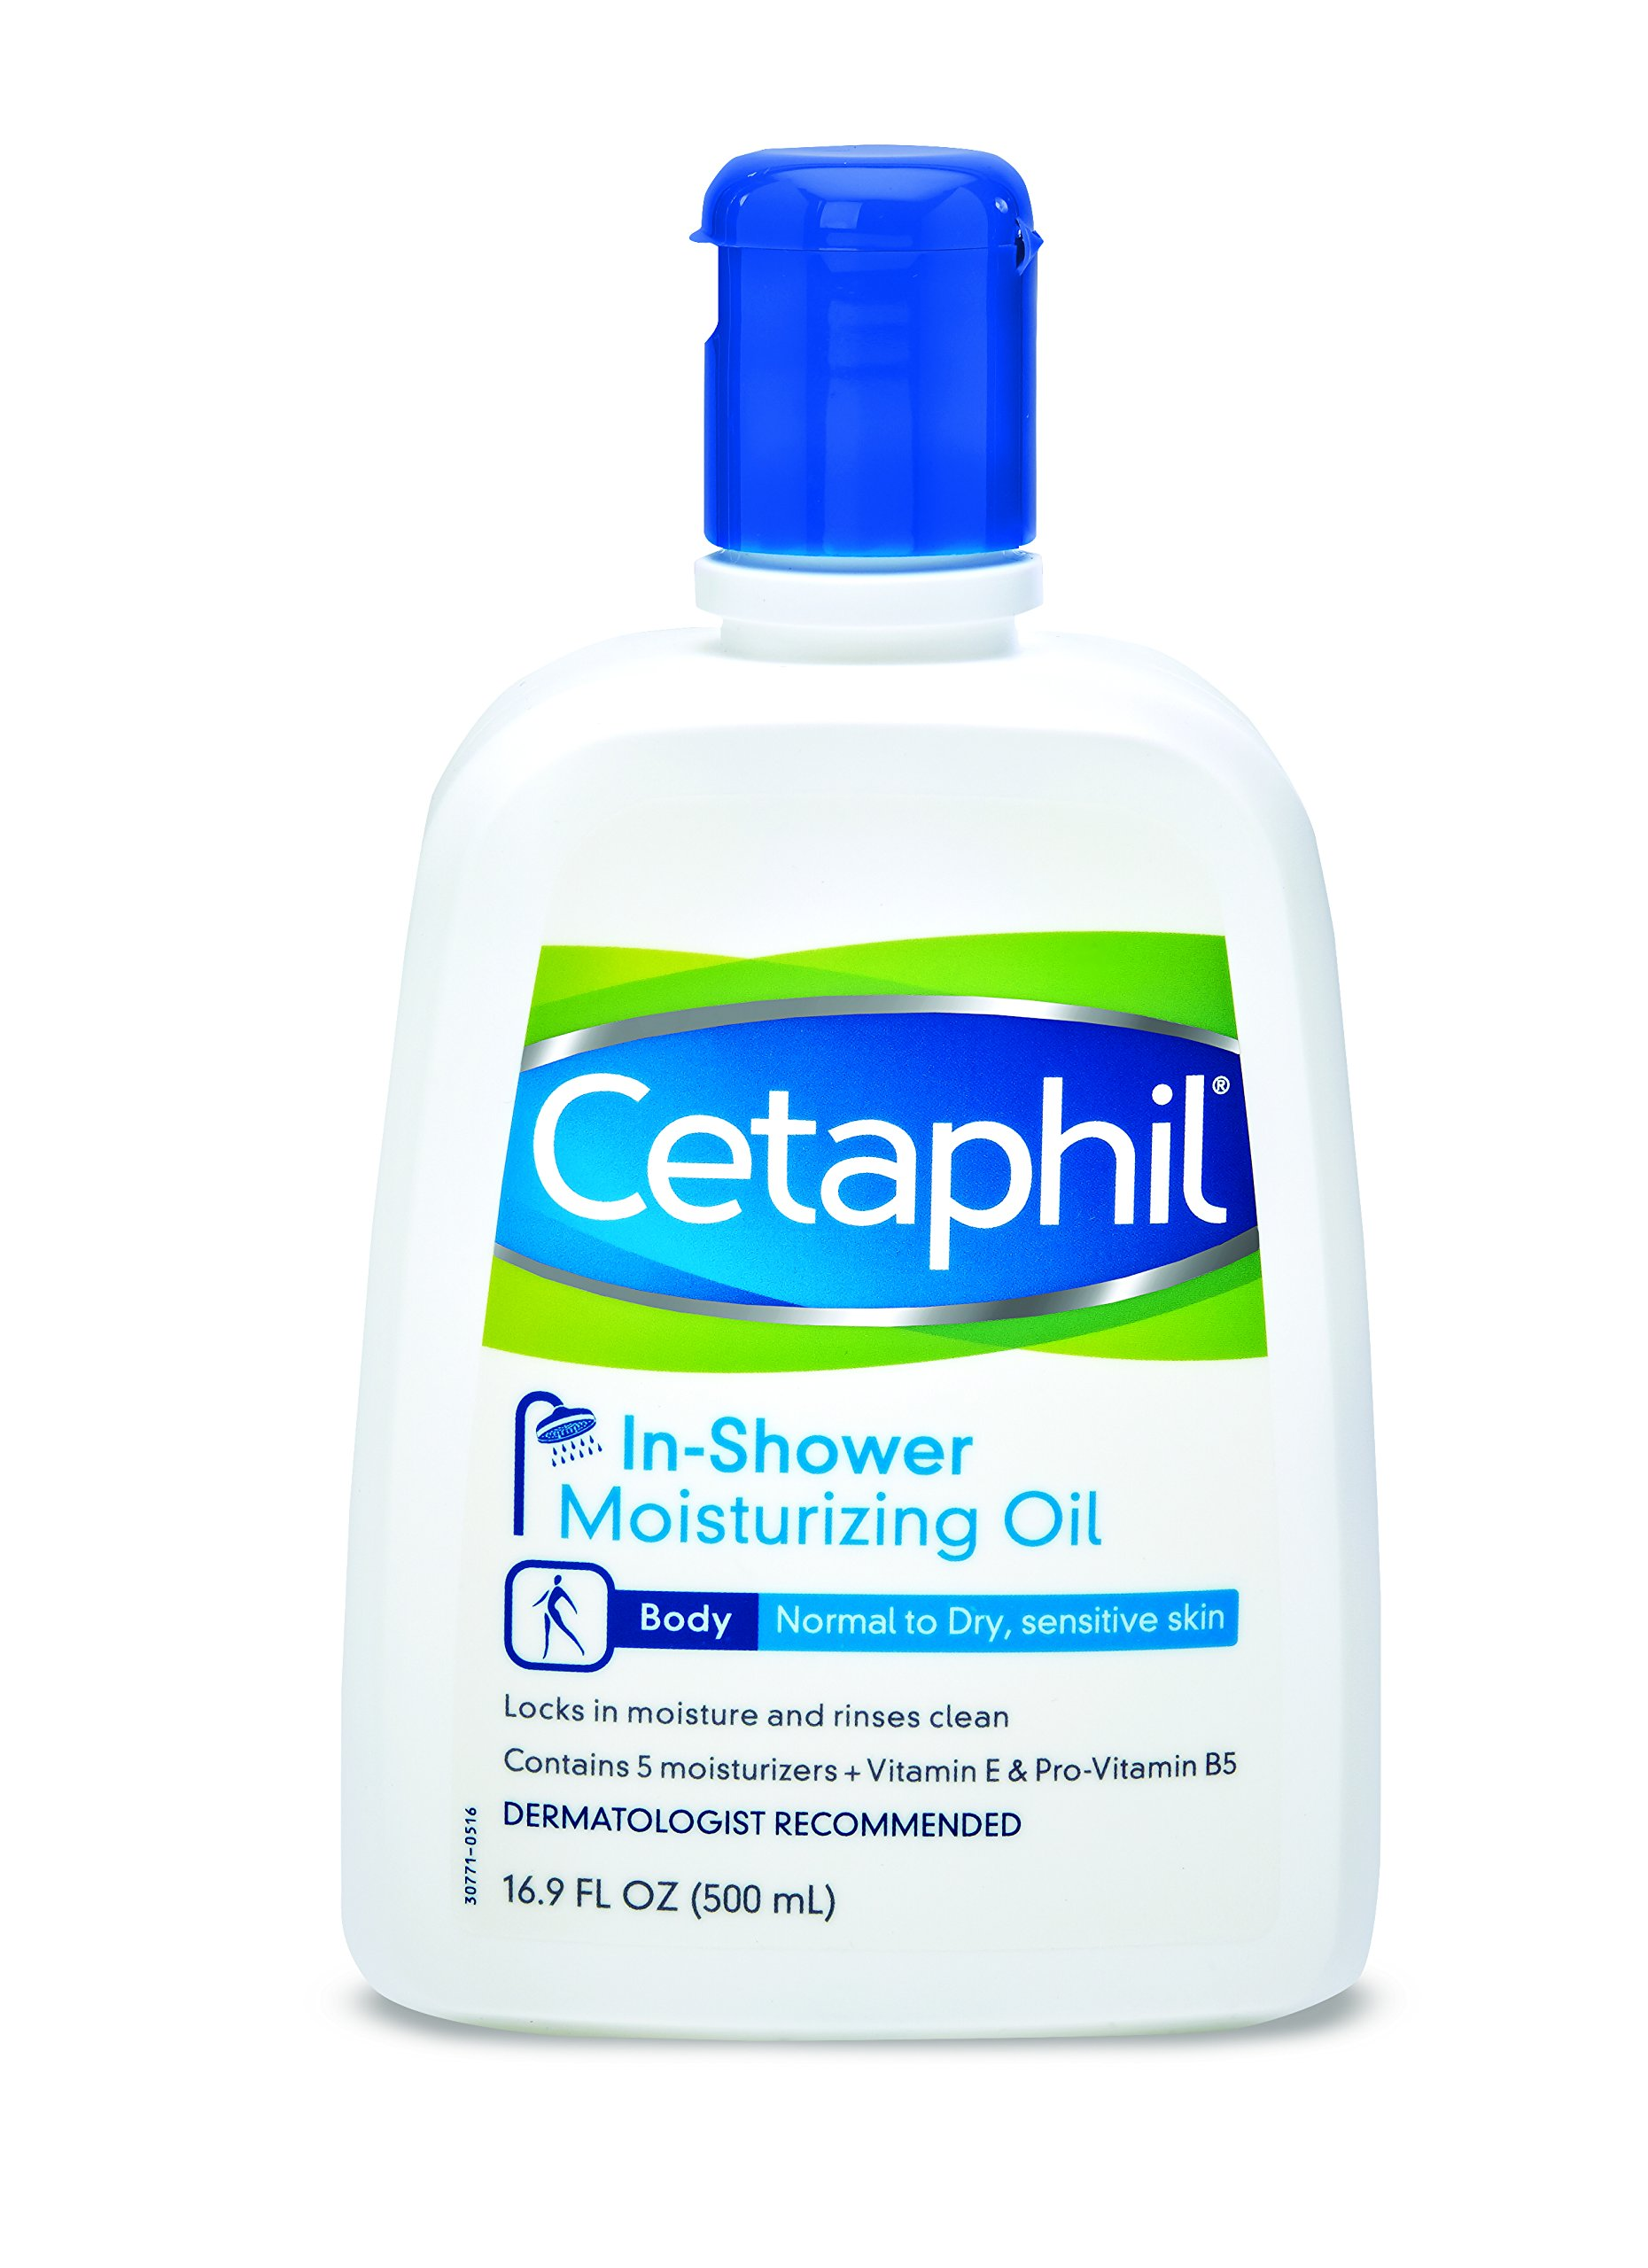 Cetaphil In-Shower Moisturizing Oil for normal to dry, sensative skin, 16.9 ounce by Cetaphil